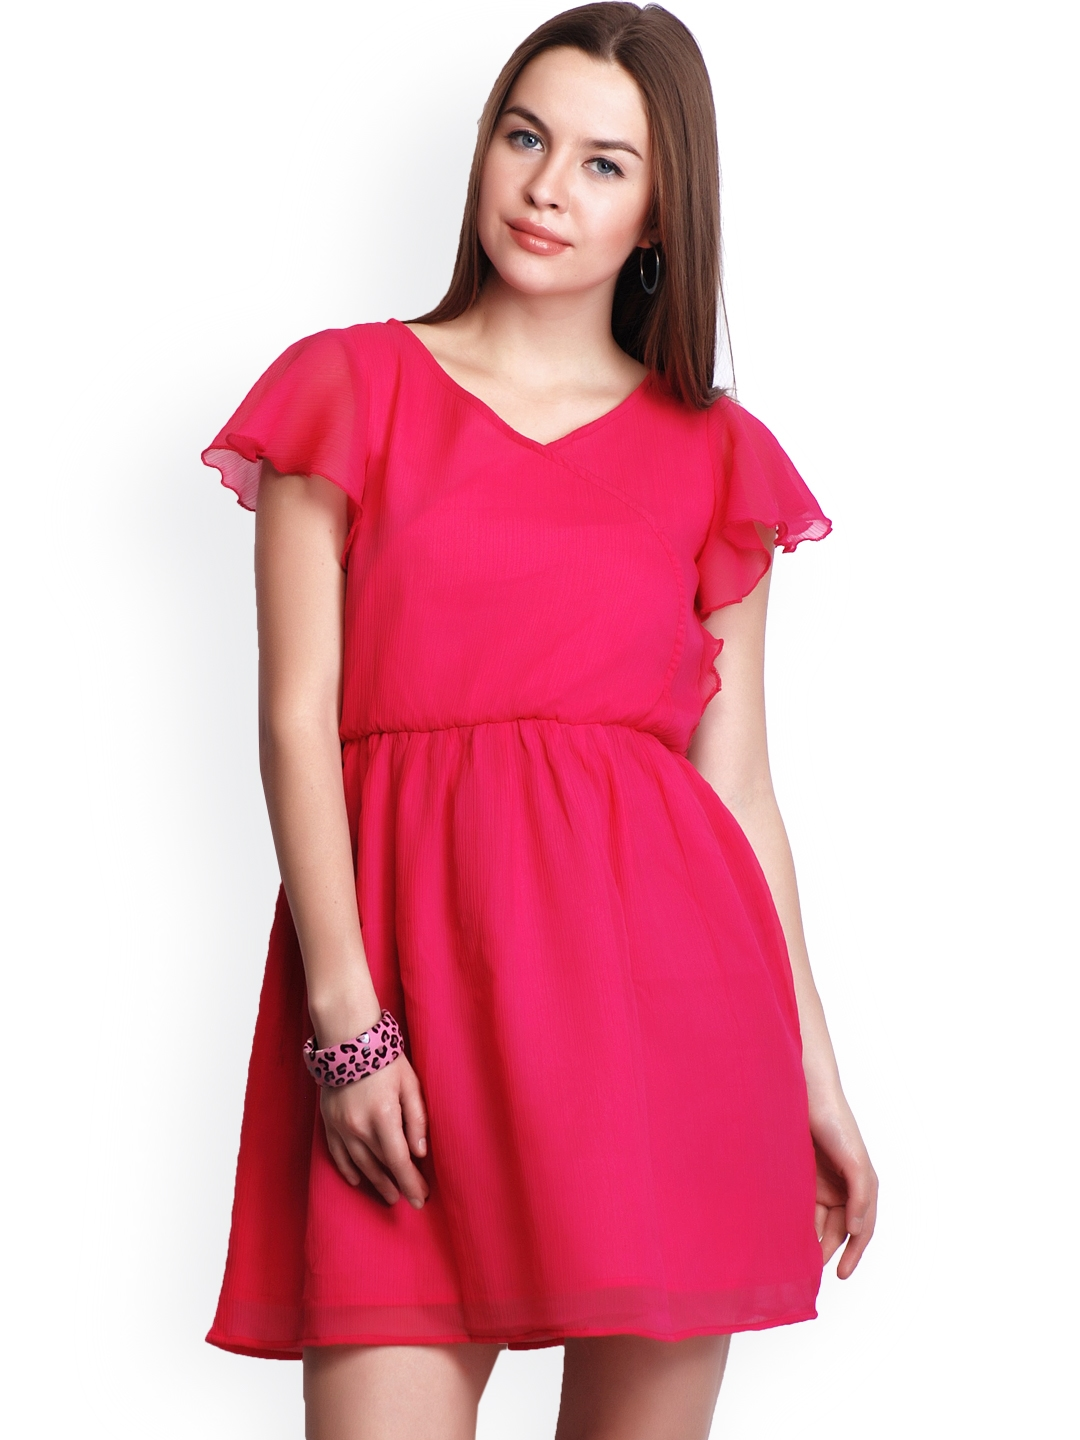 47a5f0506db34 Buy Belle Fille Fuchsia Pink Fit & Flare Dress - Dresses for Women ...